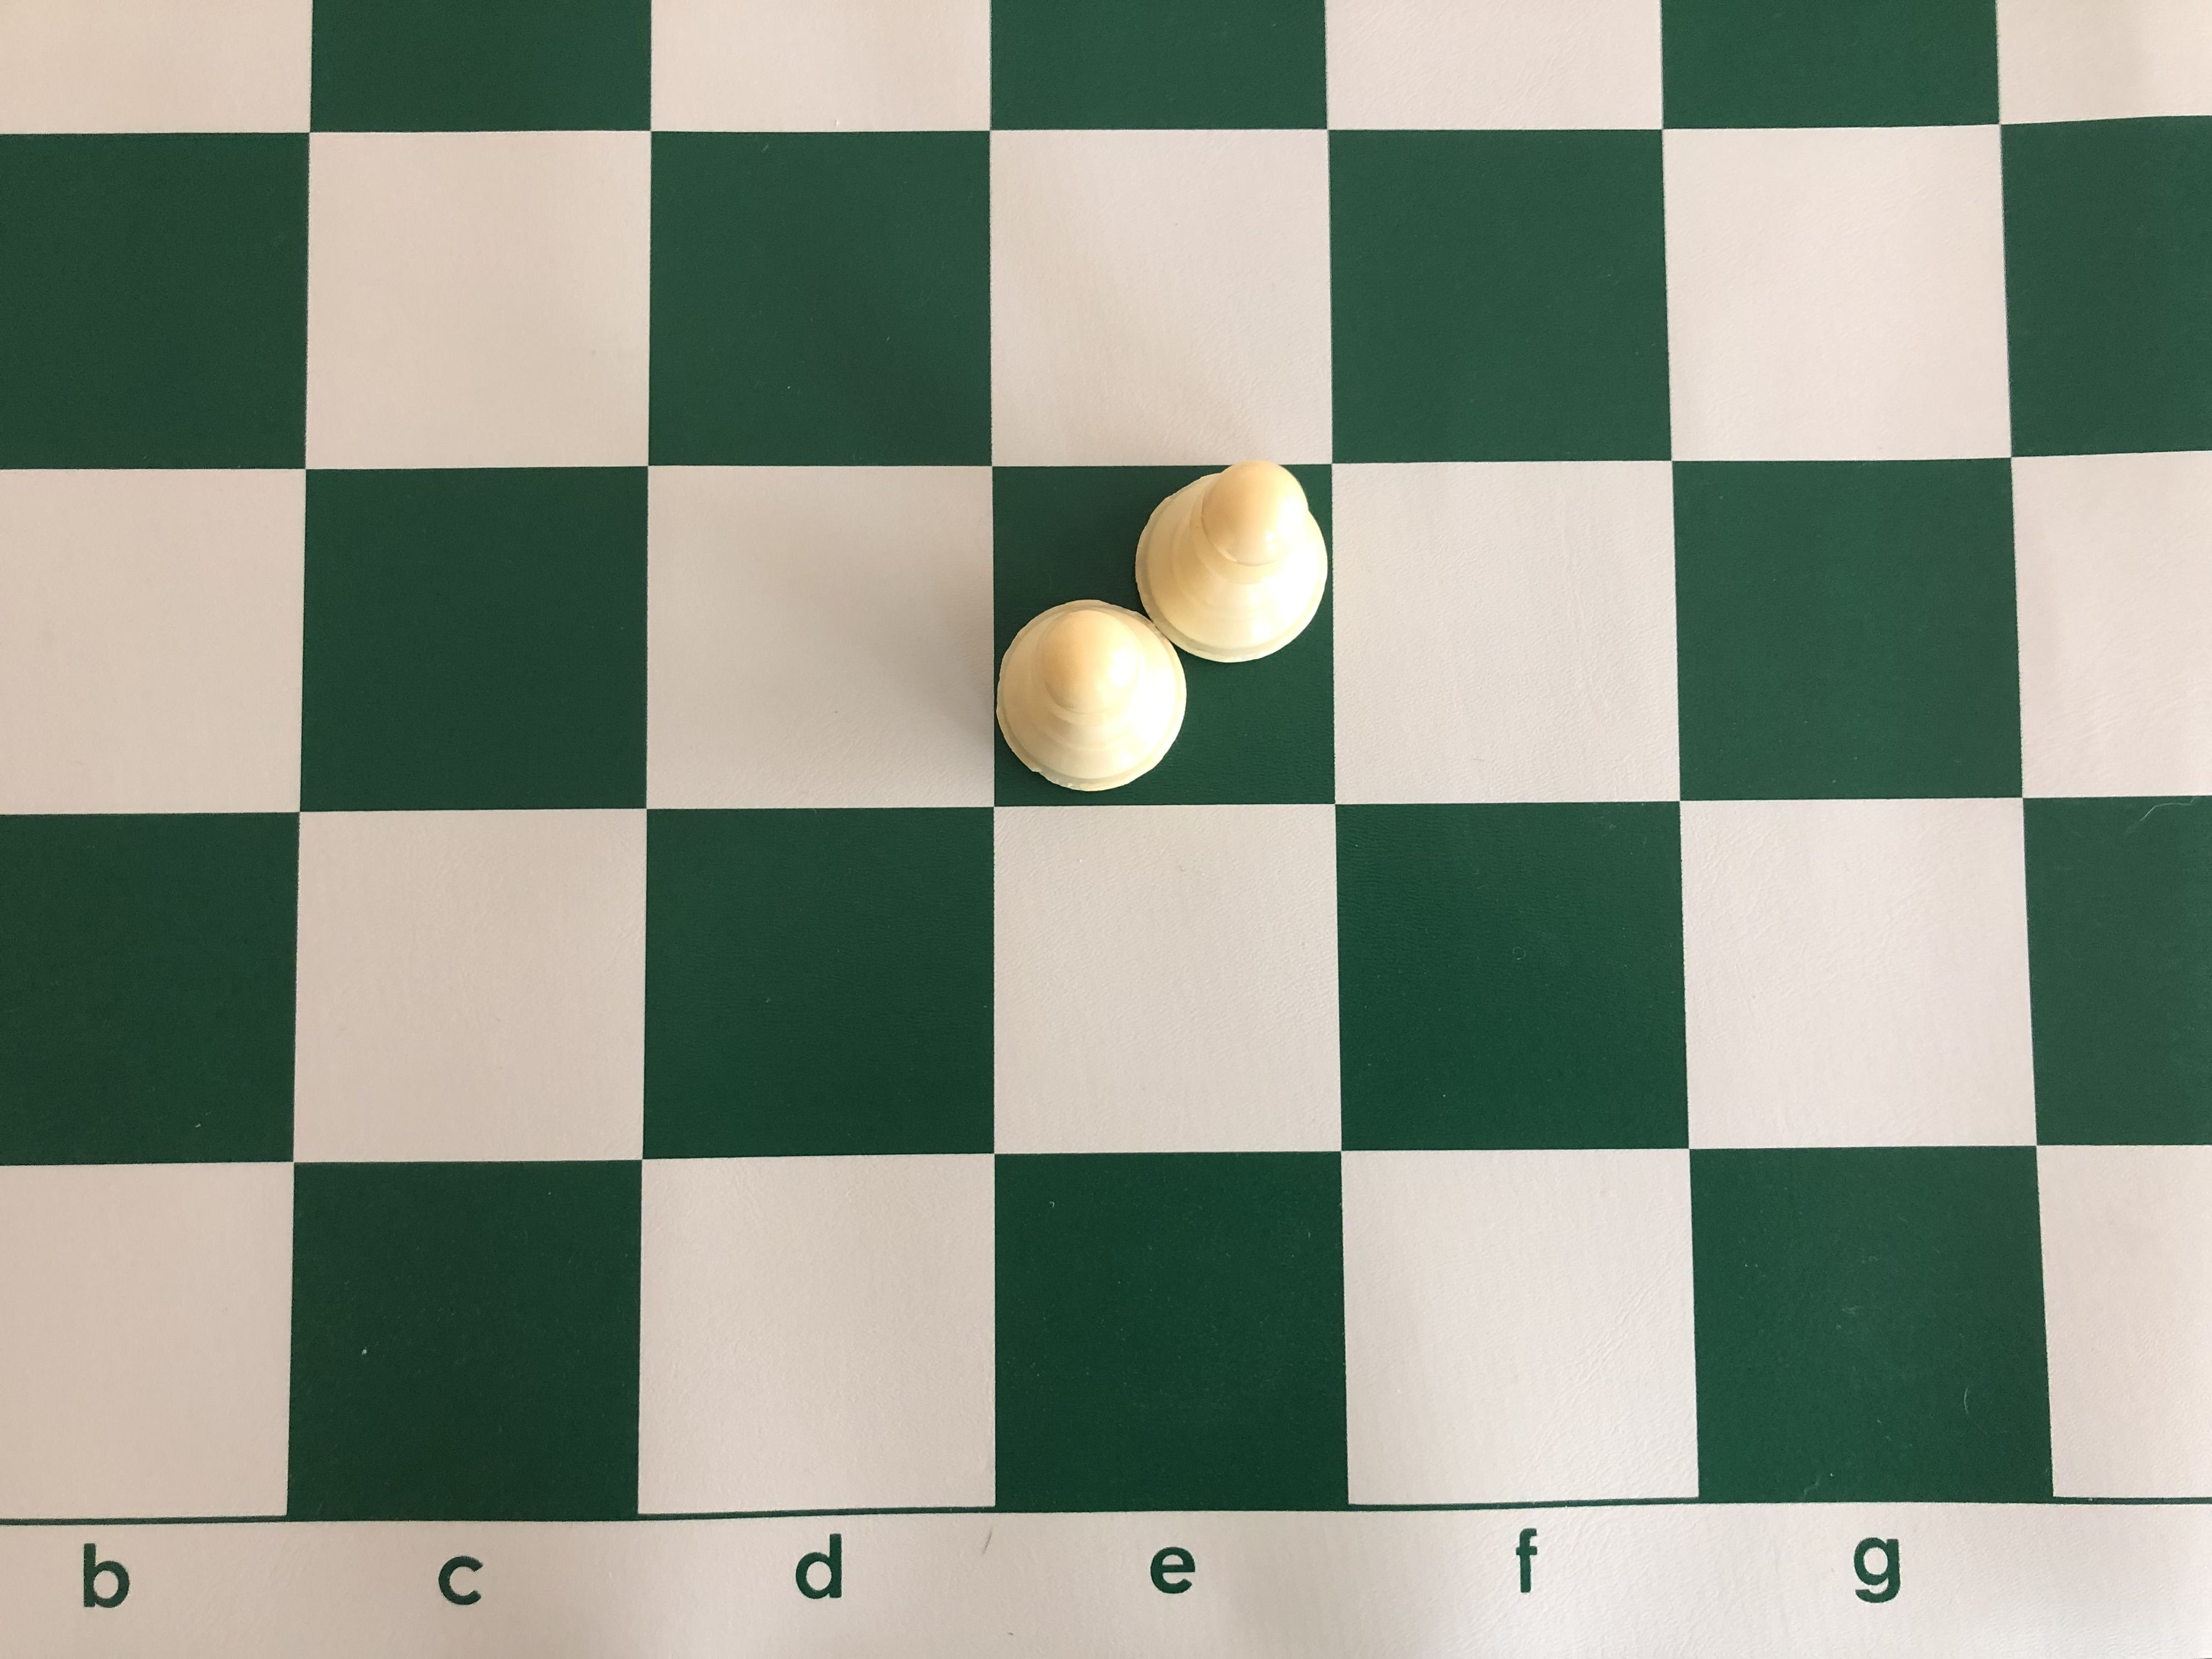 """A NEW Wooden 3 Player Chess Set Measures Just Under 11/"""" Across When Opened Green"""